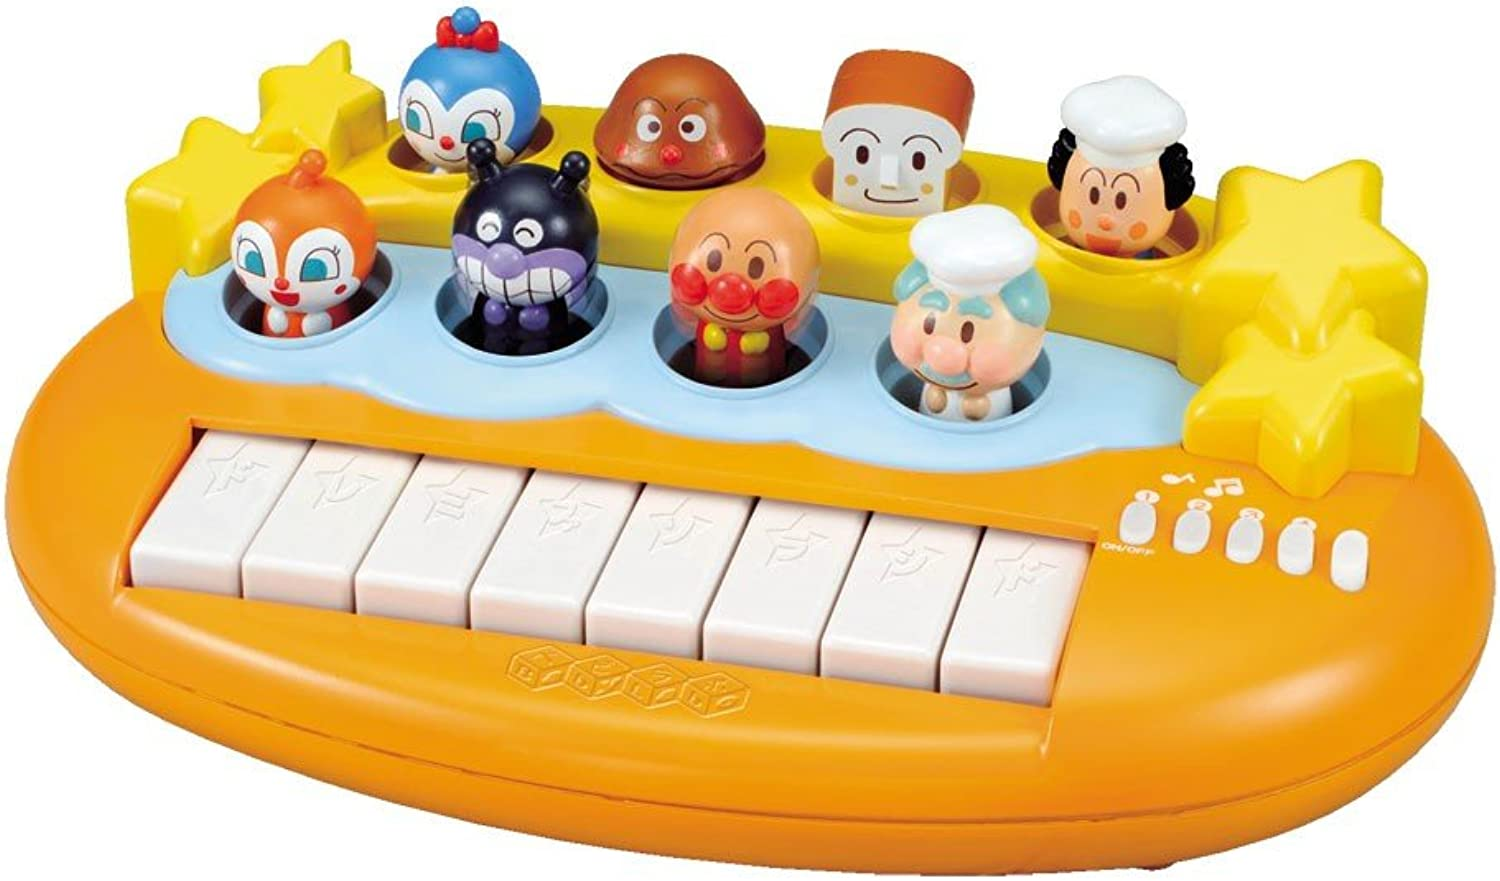 Concert BabyLabo Bebi lab Anpanman the sky (japan import)